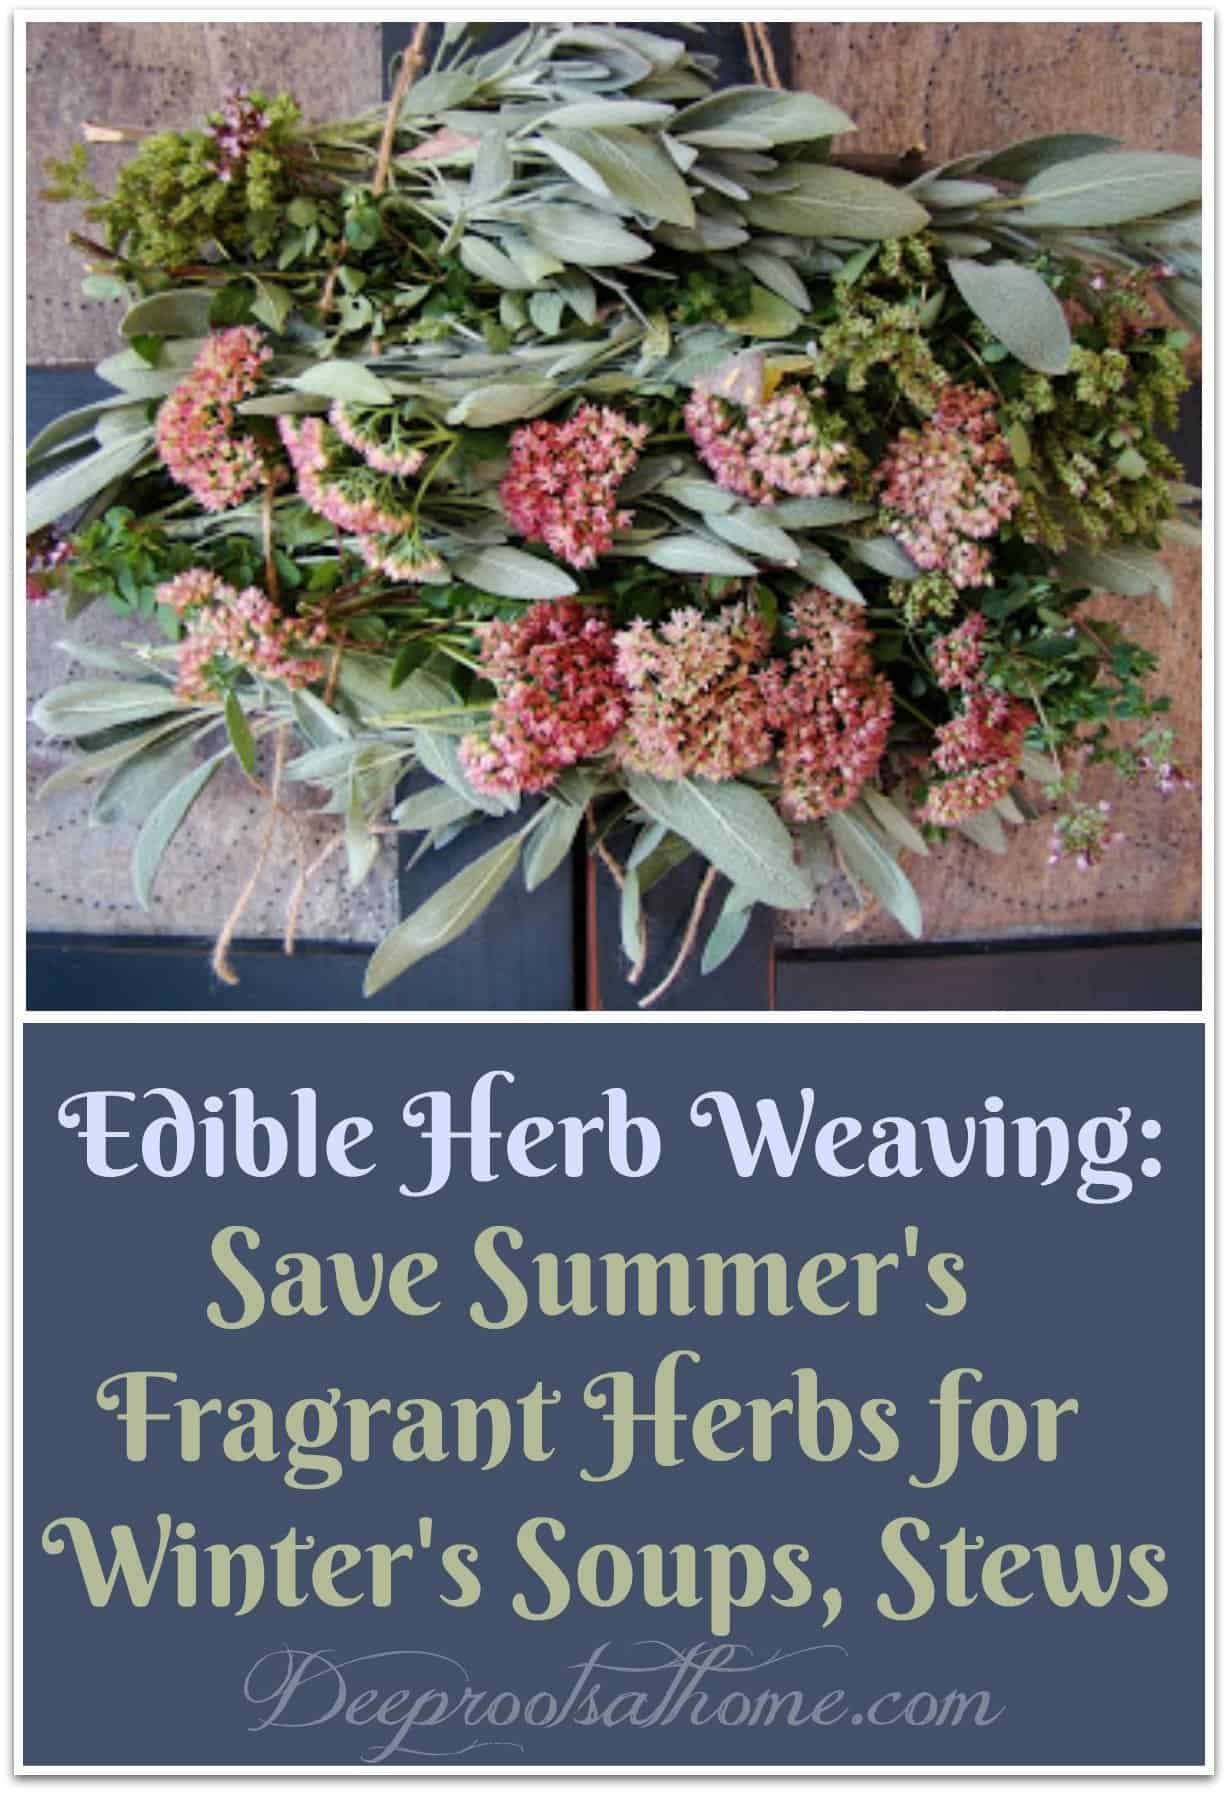 Edible Herb Weaving: Save Summer's Herbs for Winter's Soups, Stews. herb weaving on a frame, country art